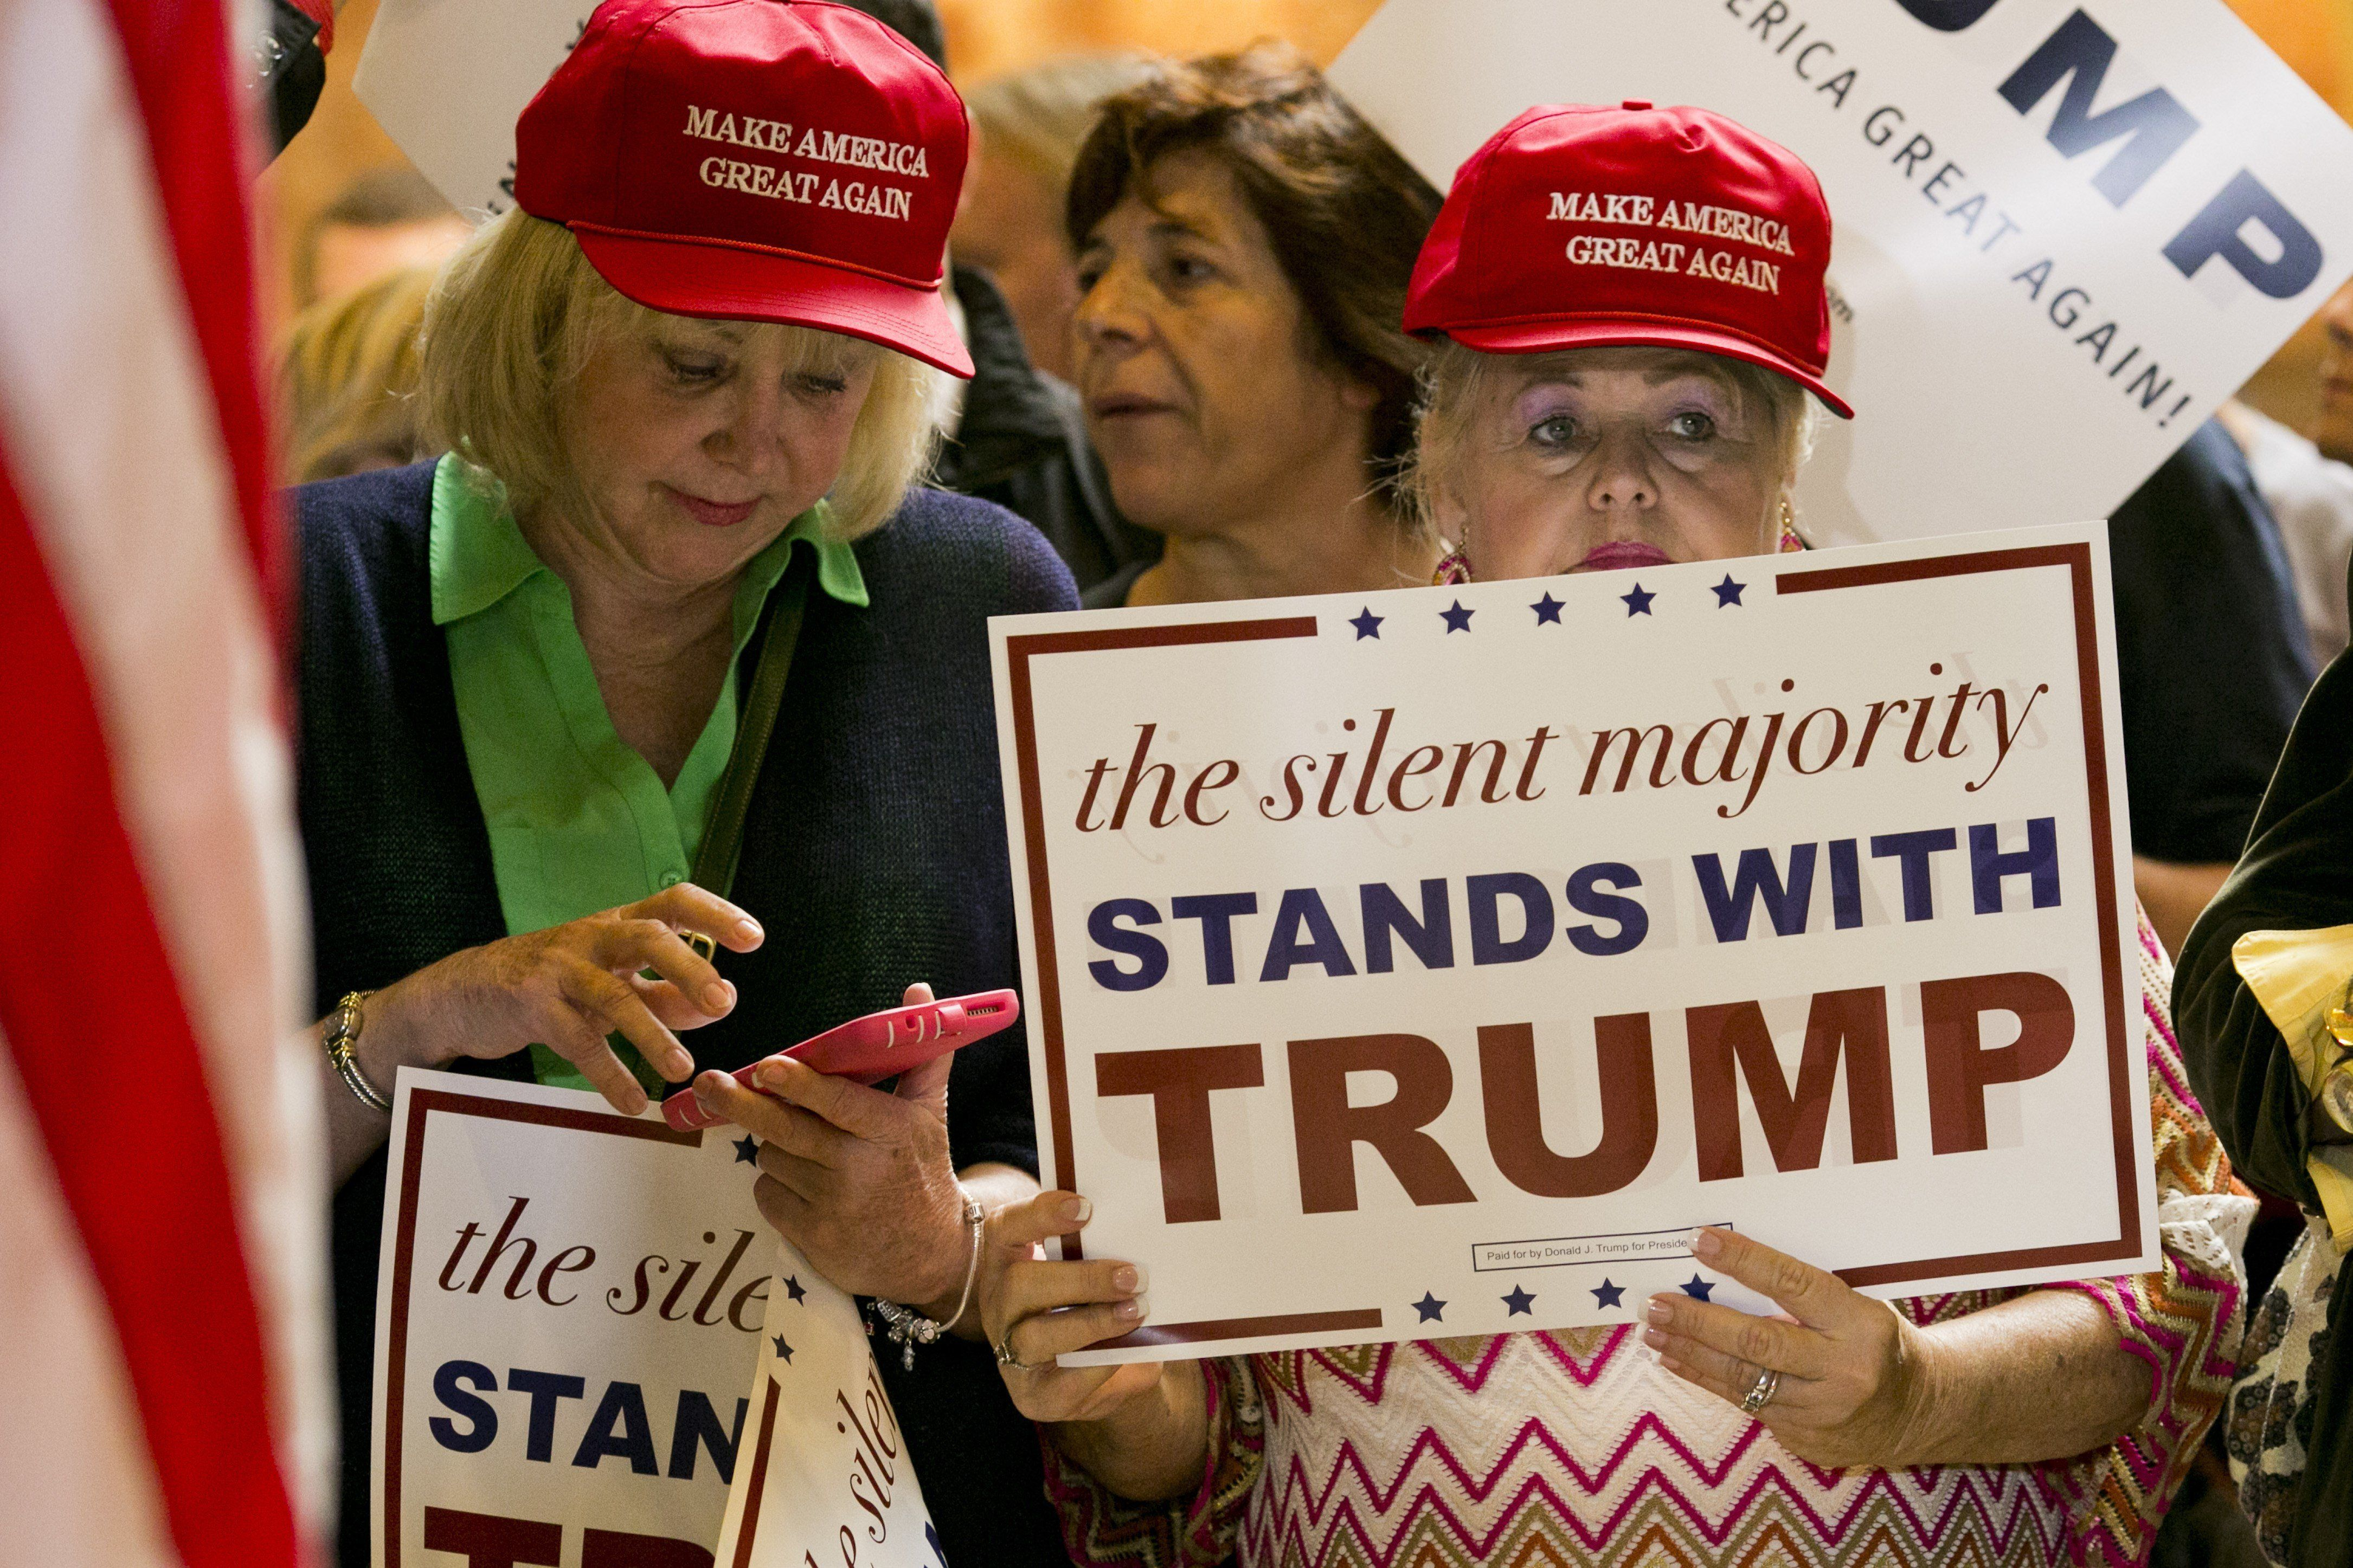 Donald Trump supporters at his Sept. 28, 2015, news conference at Trump Tower in New York.